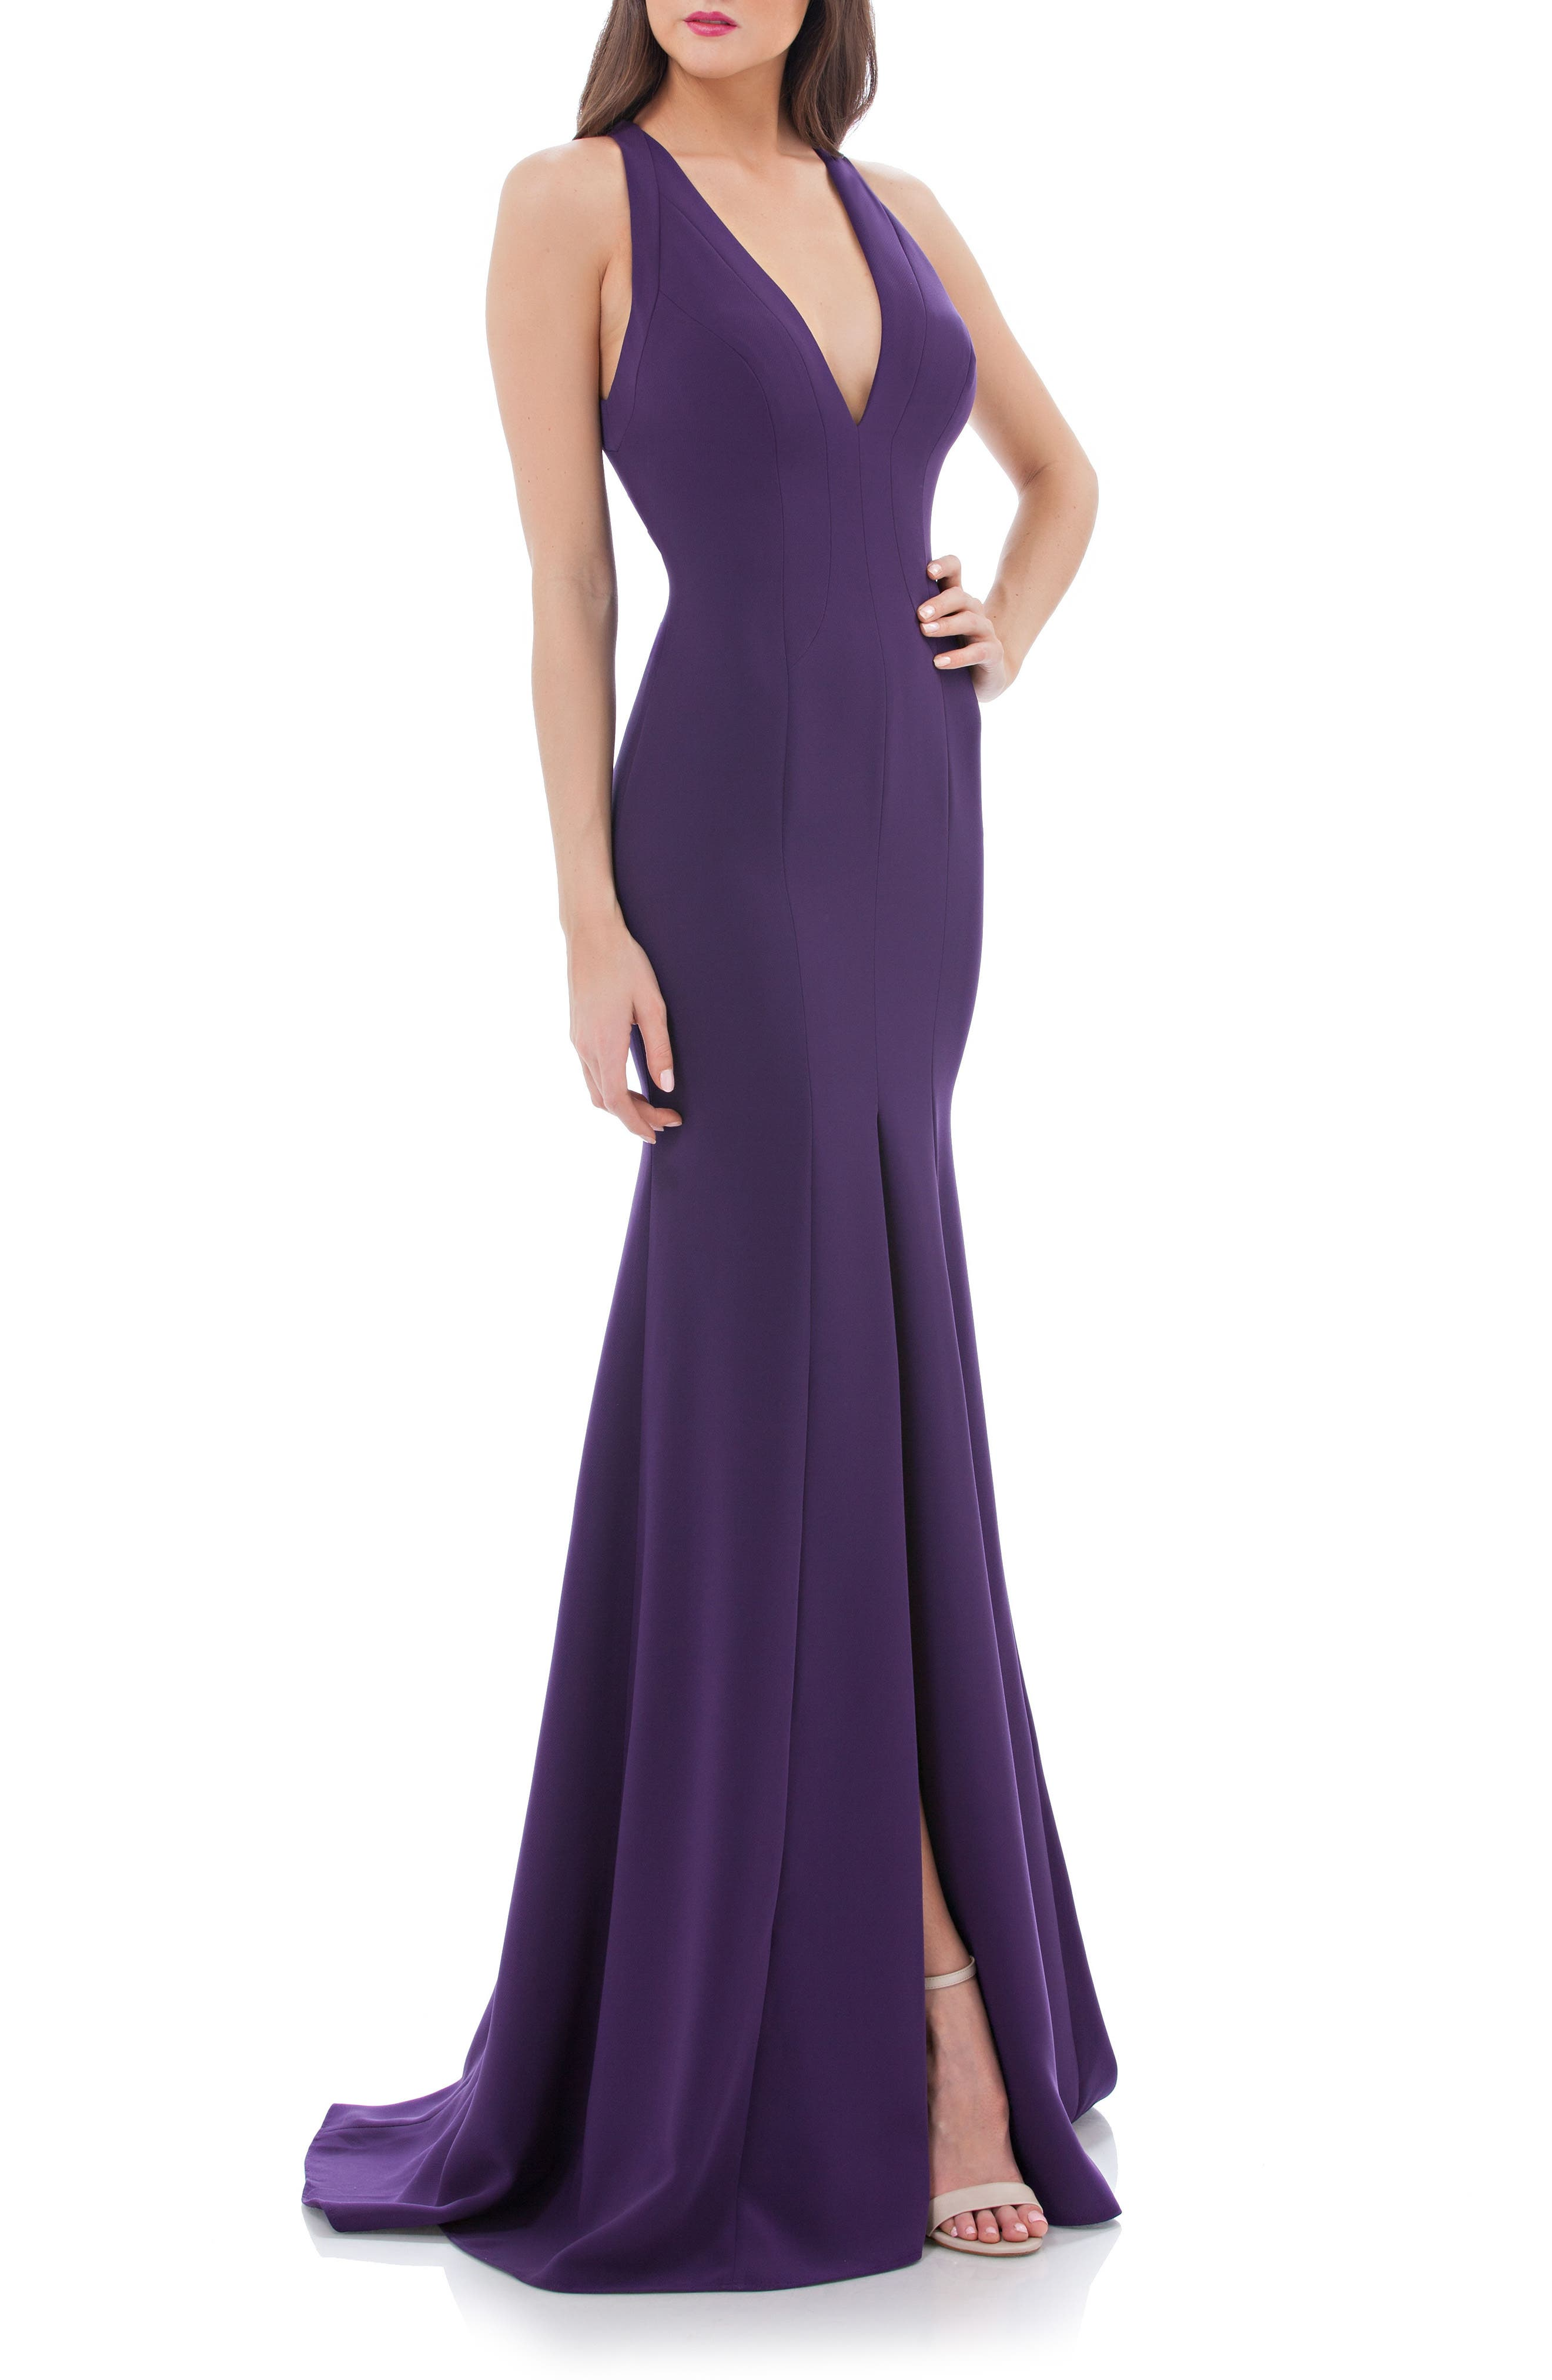 V-Neck Halter Style Gown,                         Main,                         color, 506